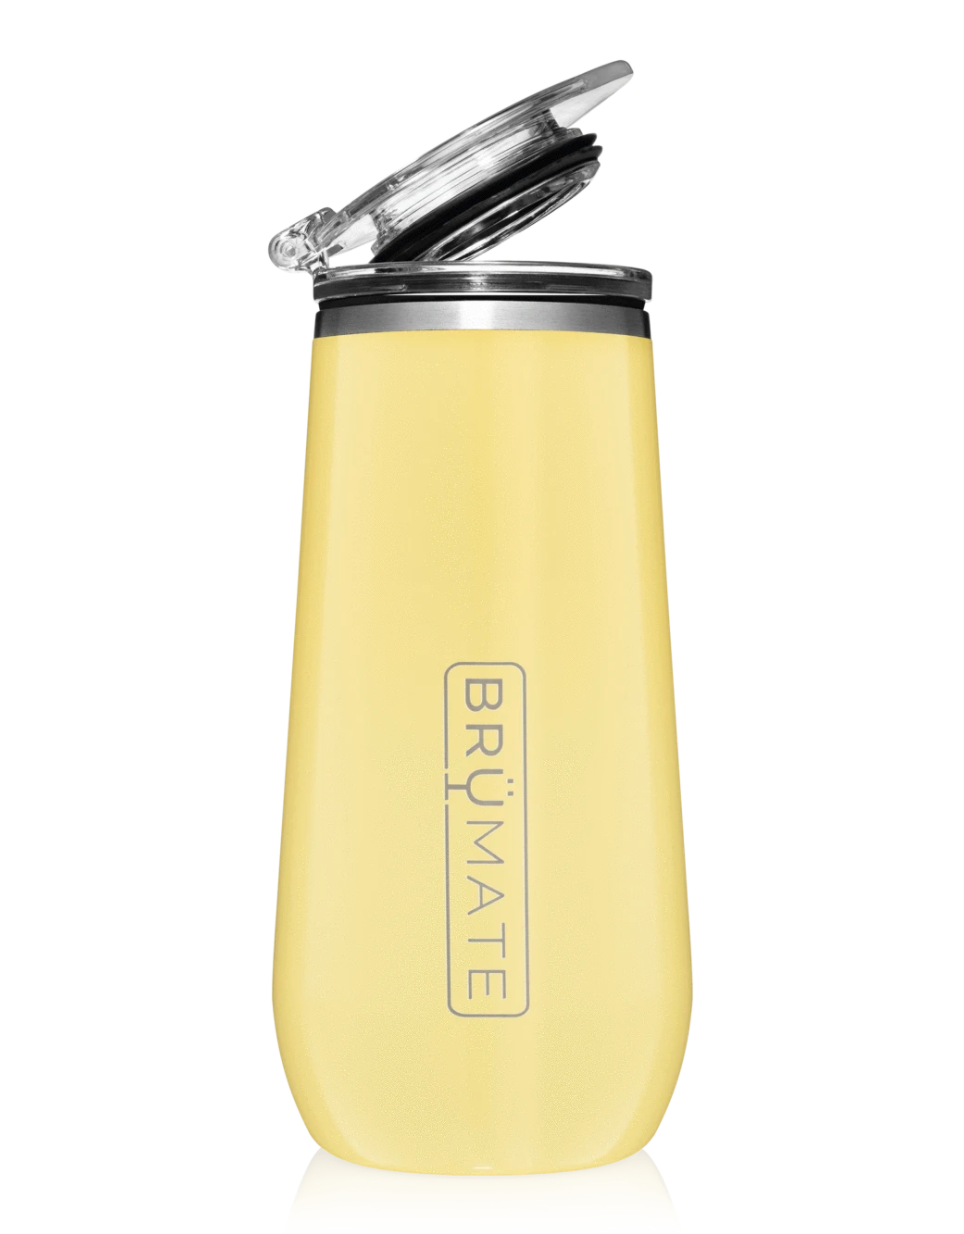 Flute Insulated 12oz Champagne Flute Daisy